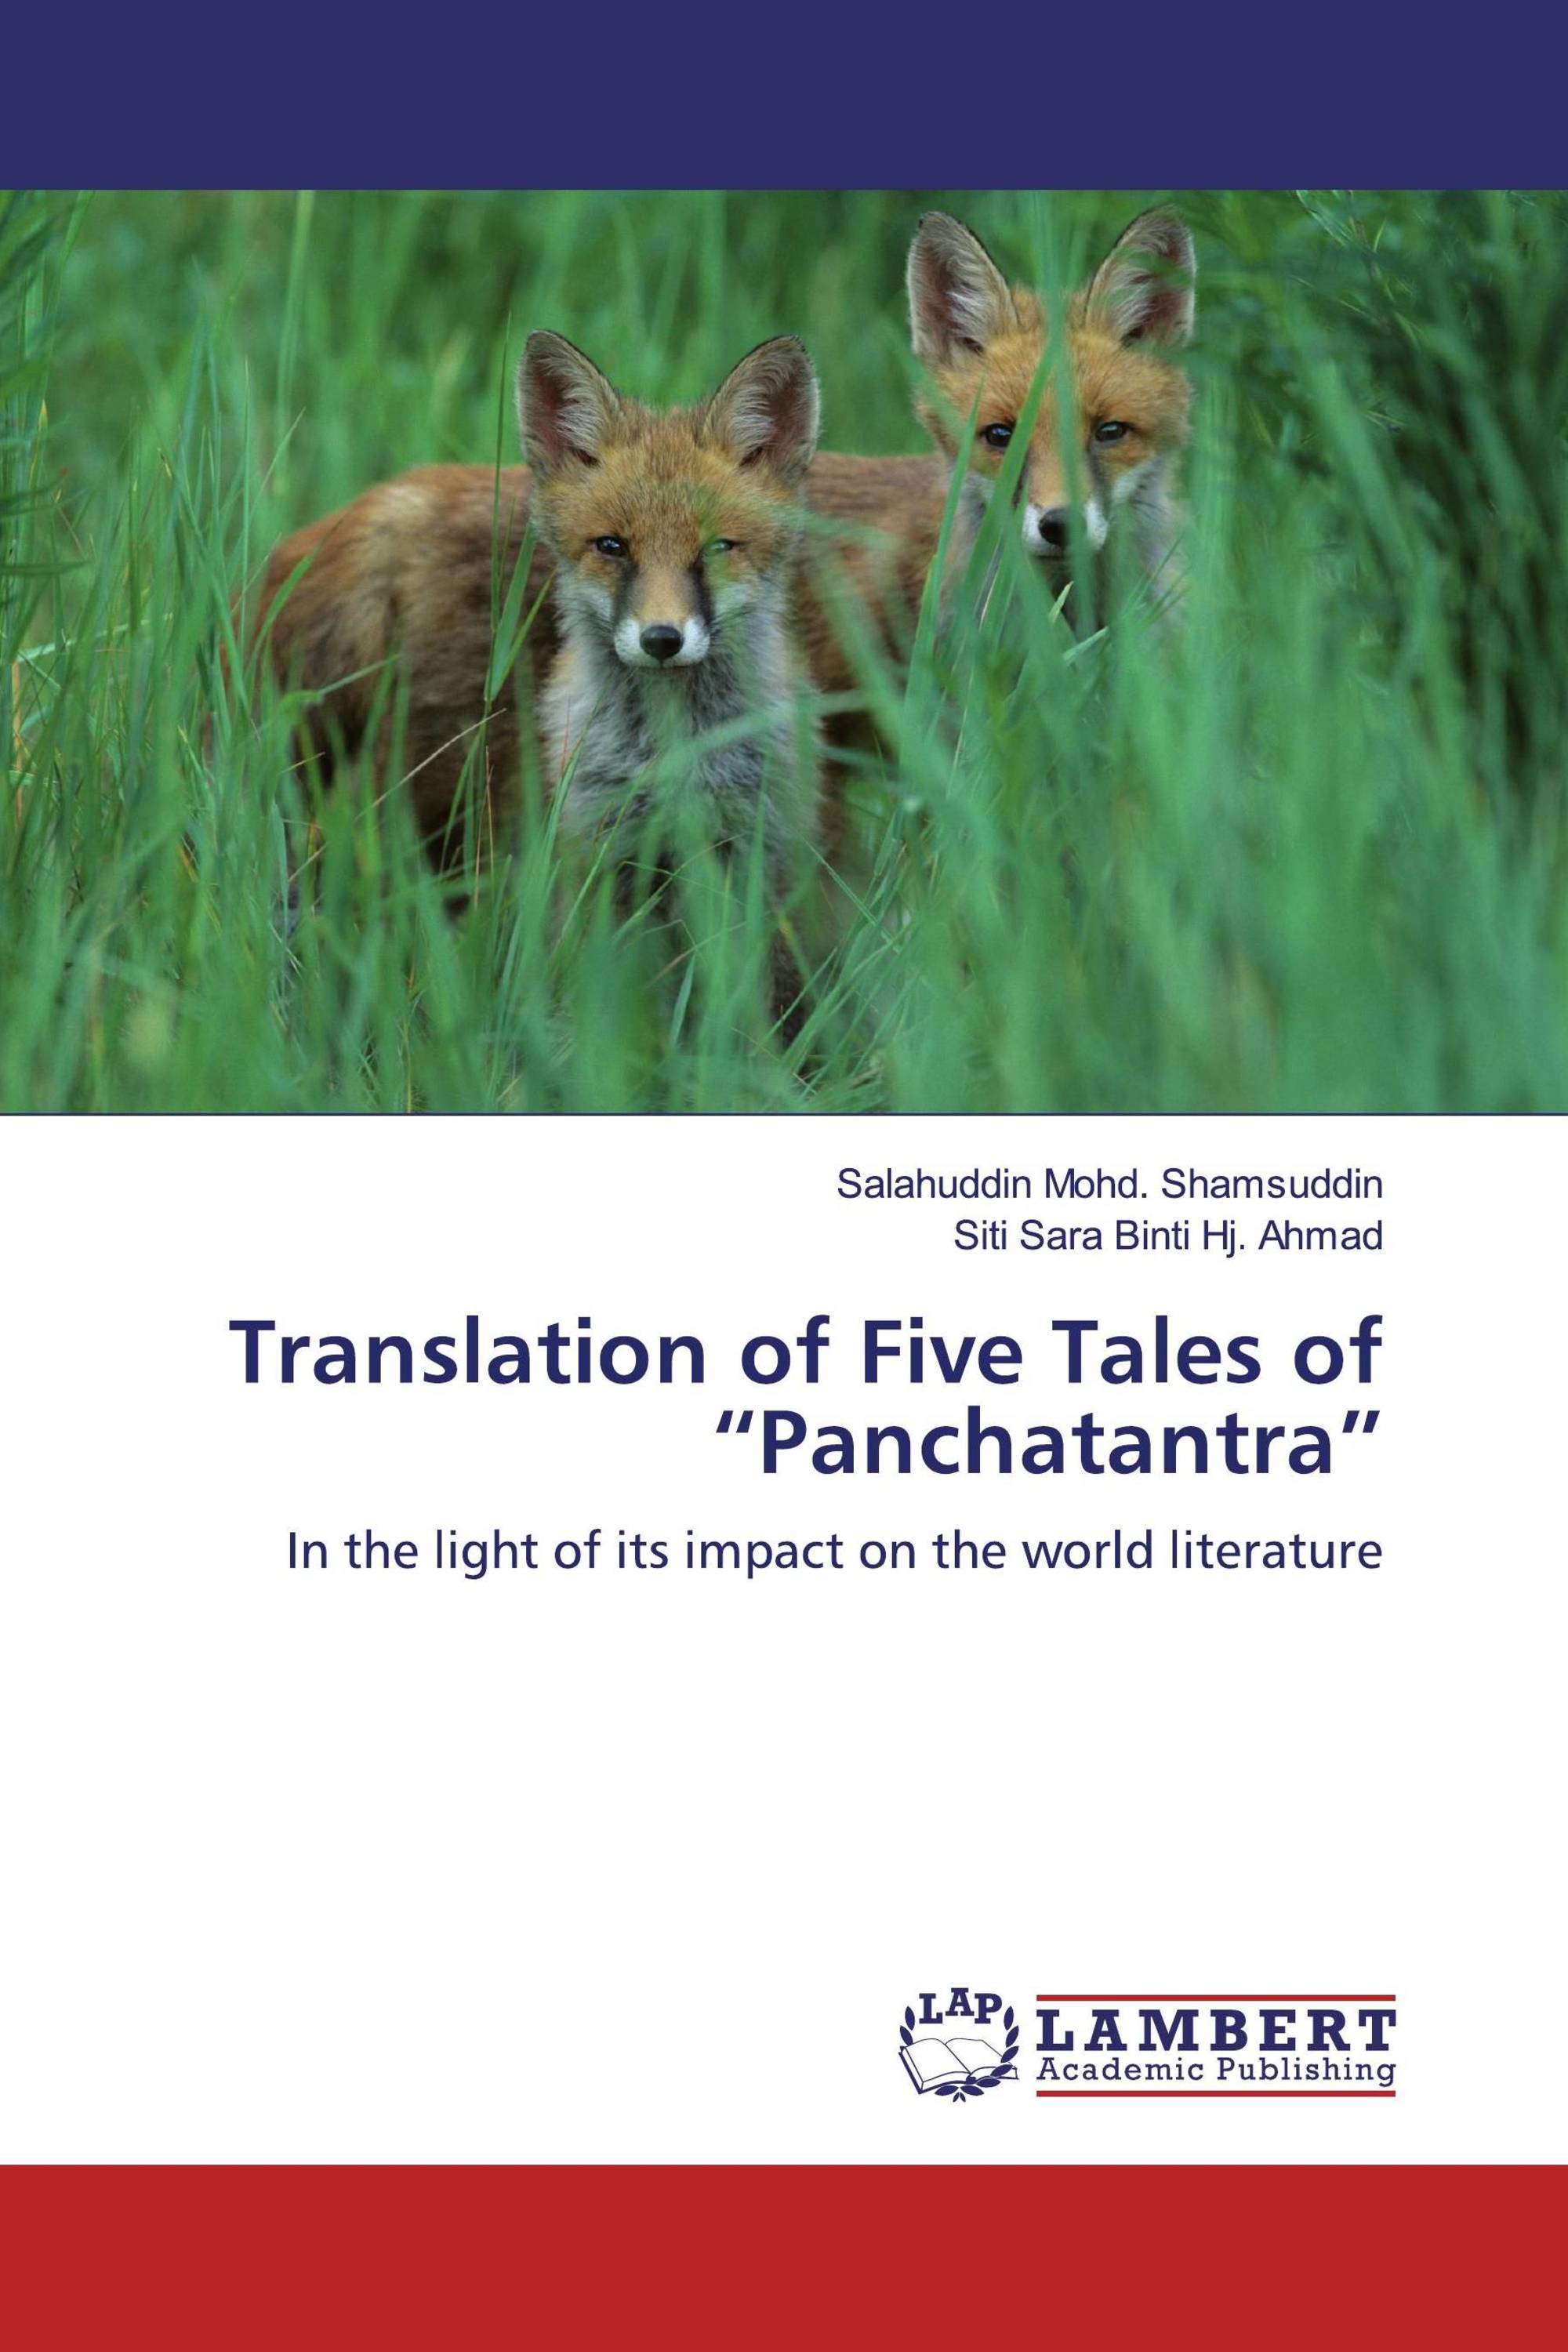 """Translation of Five Tales of """"Panchatantra"""""""